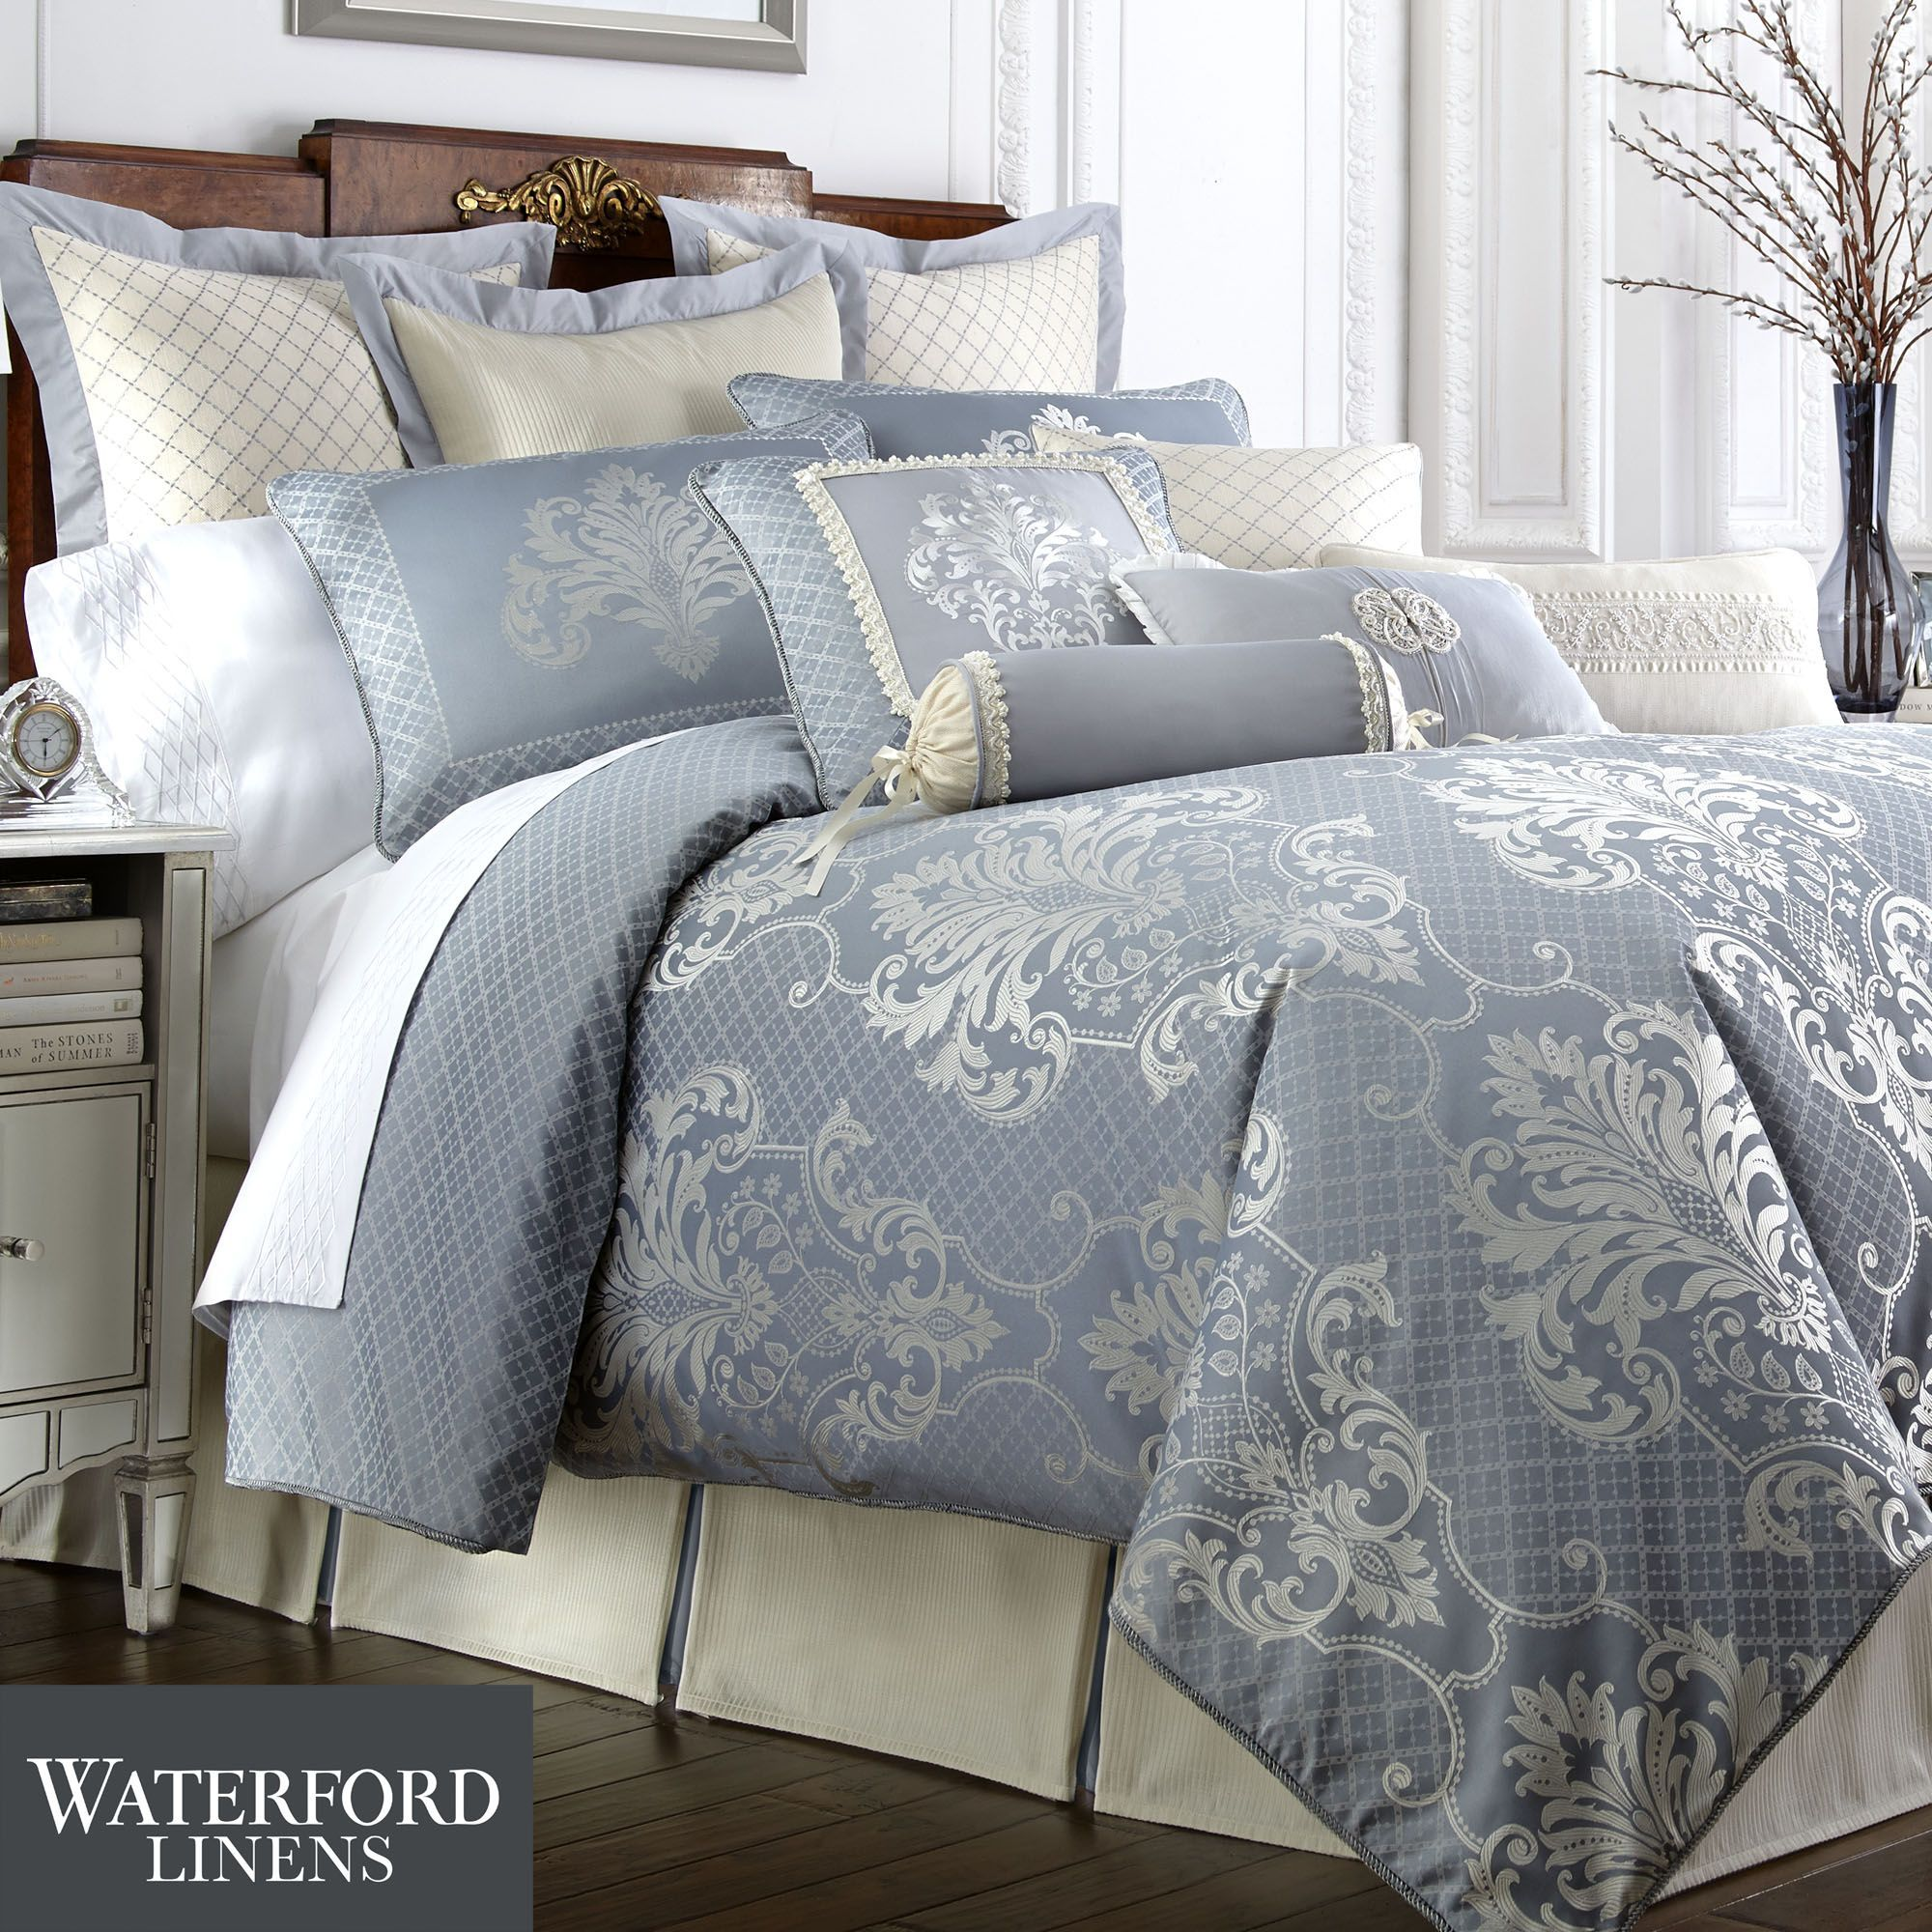 Luxury comforter sets touch of class